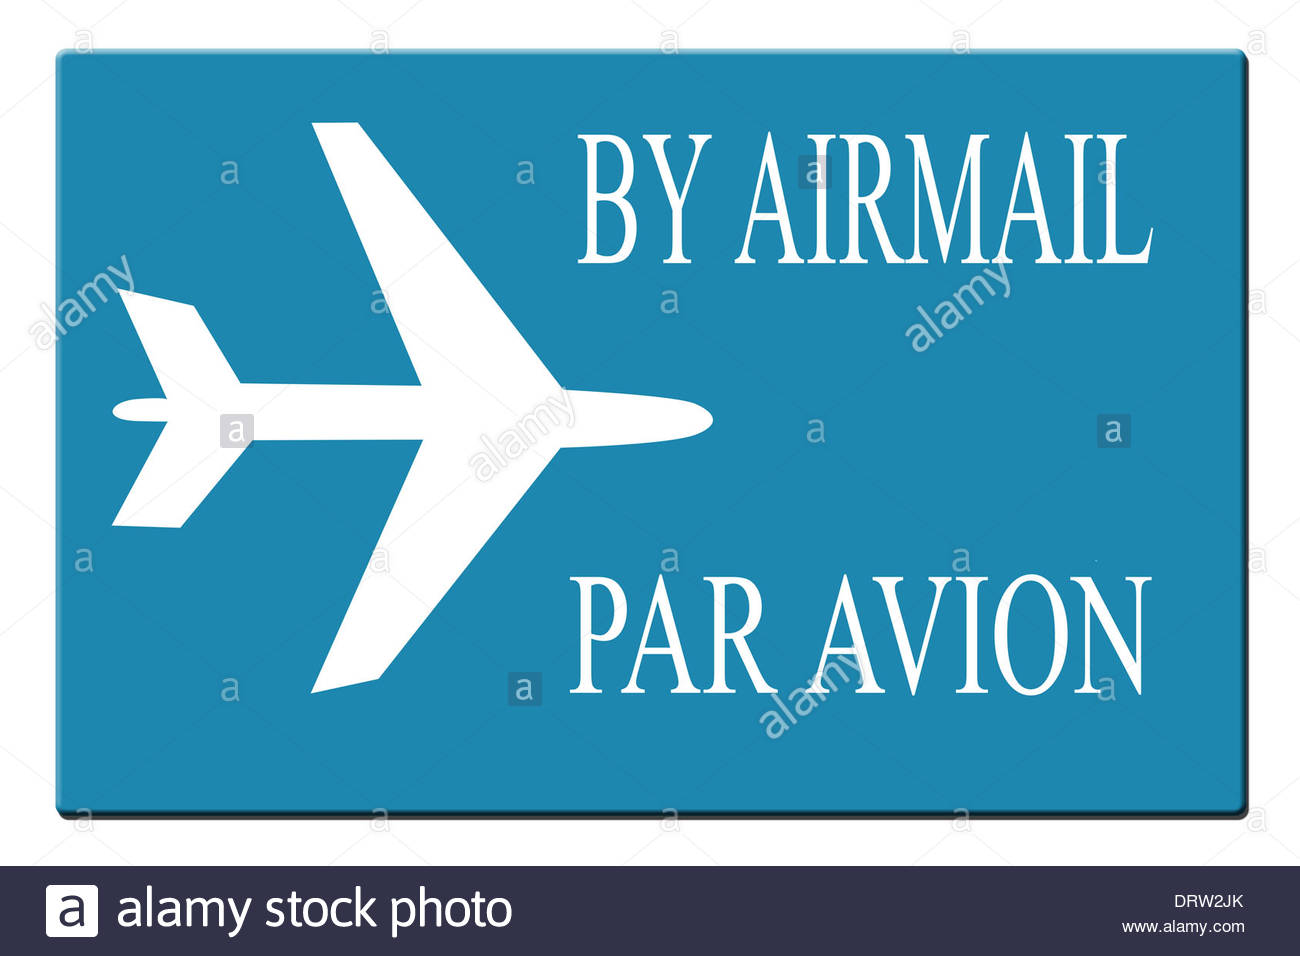 airmail letter stock photos airmail letter stock images alamy